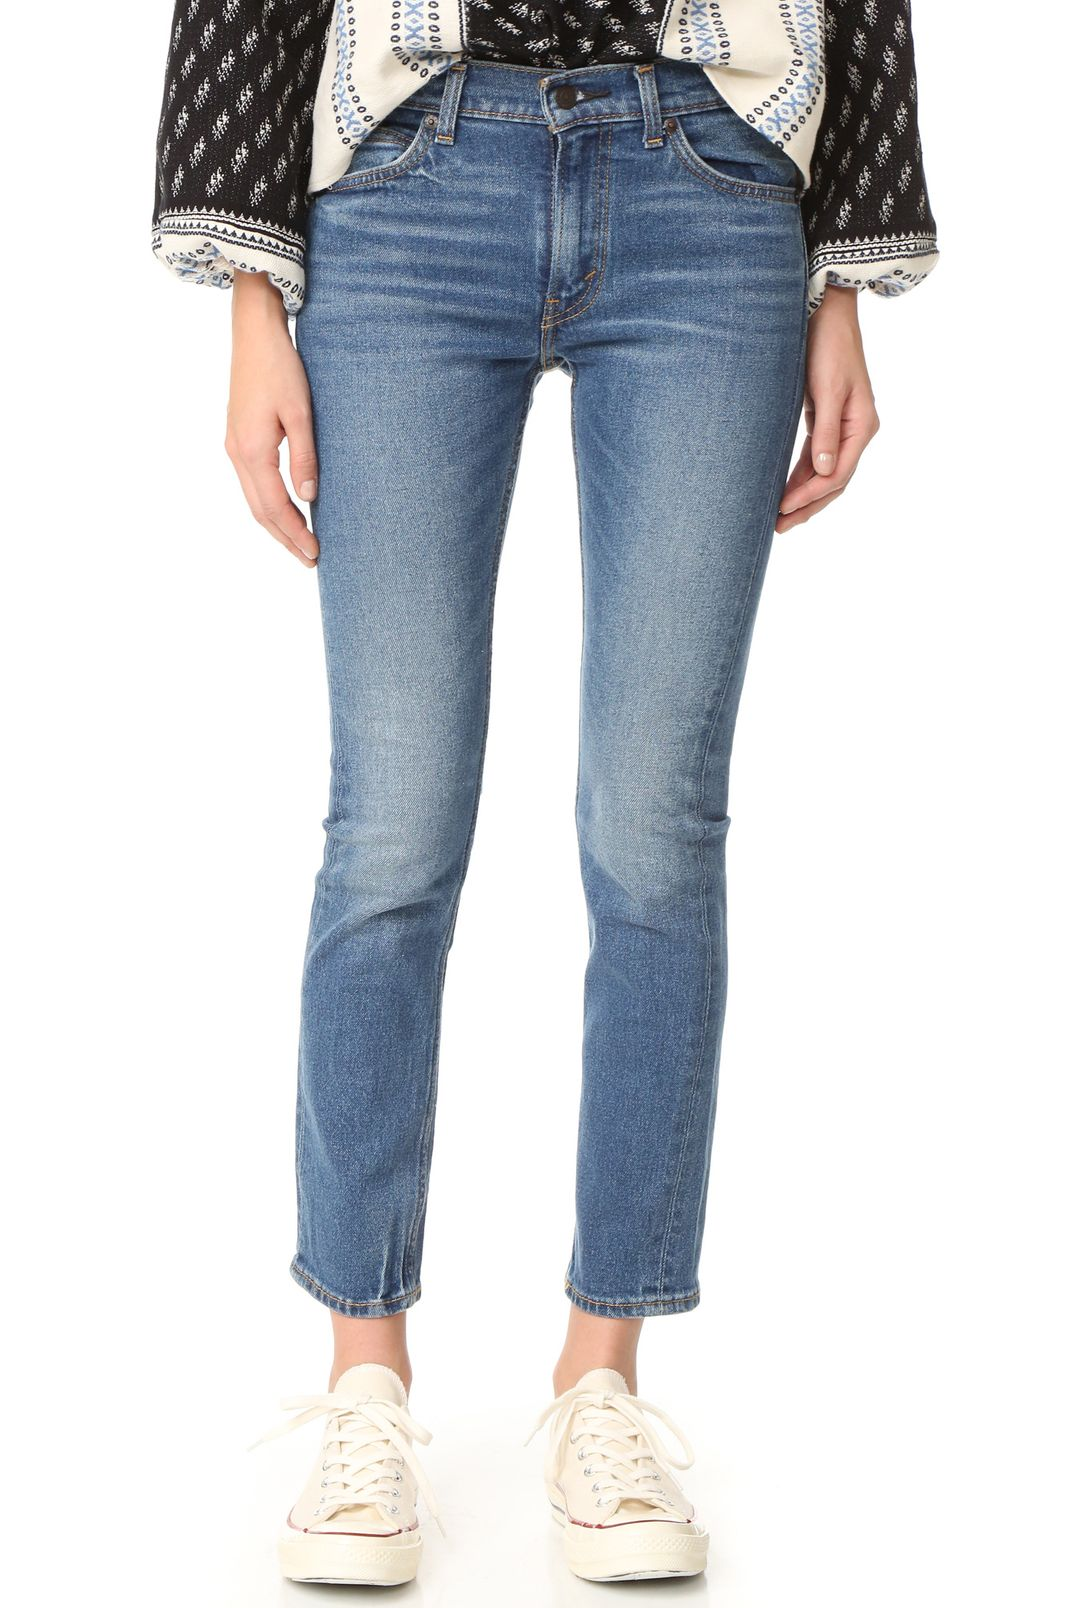 Shop Women's Jeans at American Eagle available in extended sizes. Choose from Jegging, High Waisted, Skinny and more in light and dark washes from America's favorite denim brand. #AEJeans Tops Jeans Bottoms Dresses & Rompers Shoes Accessories Fragrance & Beauty Women.